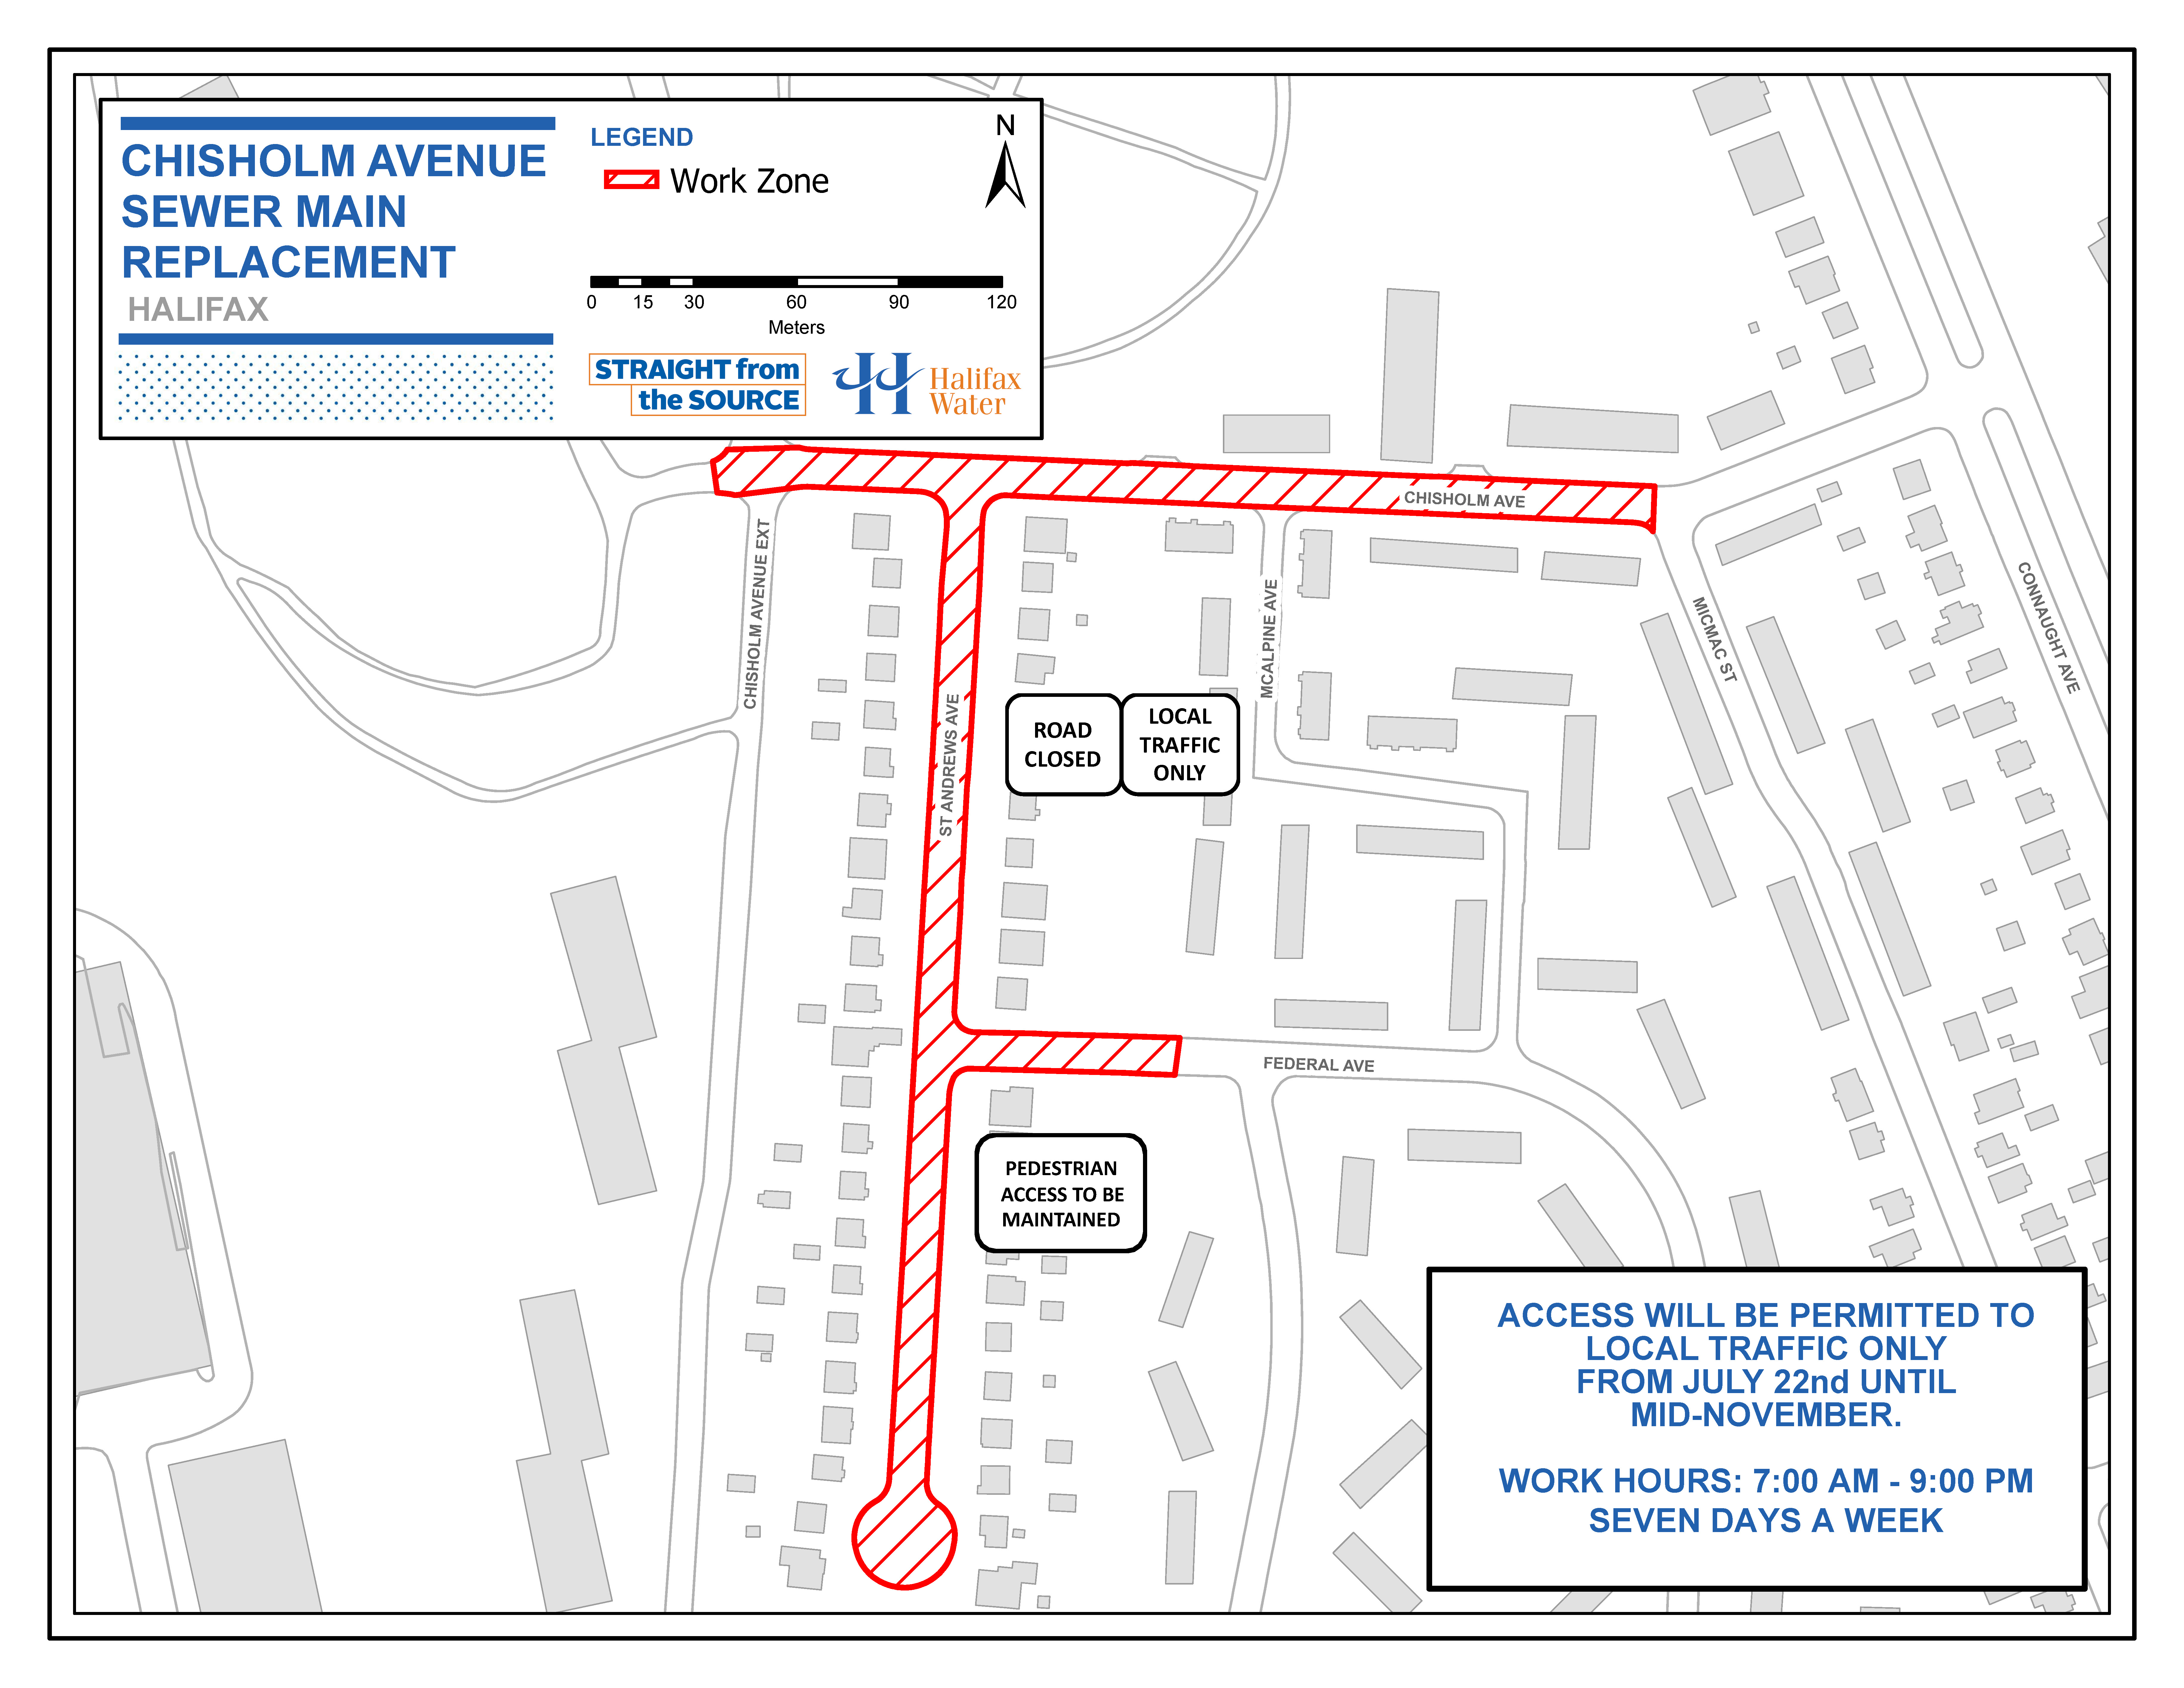 Map of work area for Chisholm Avenue Sewer Main Replacement Project